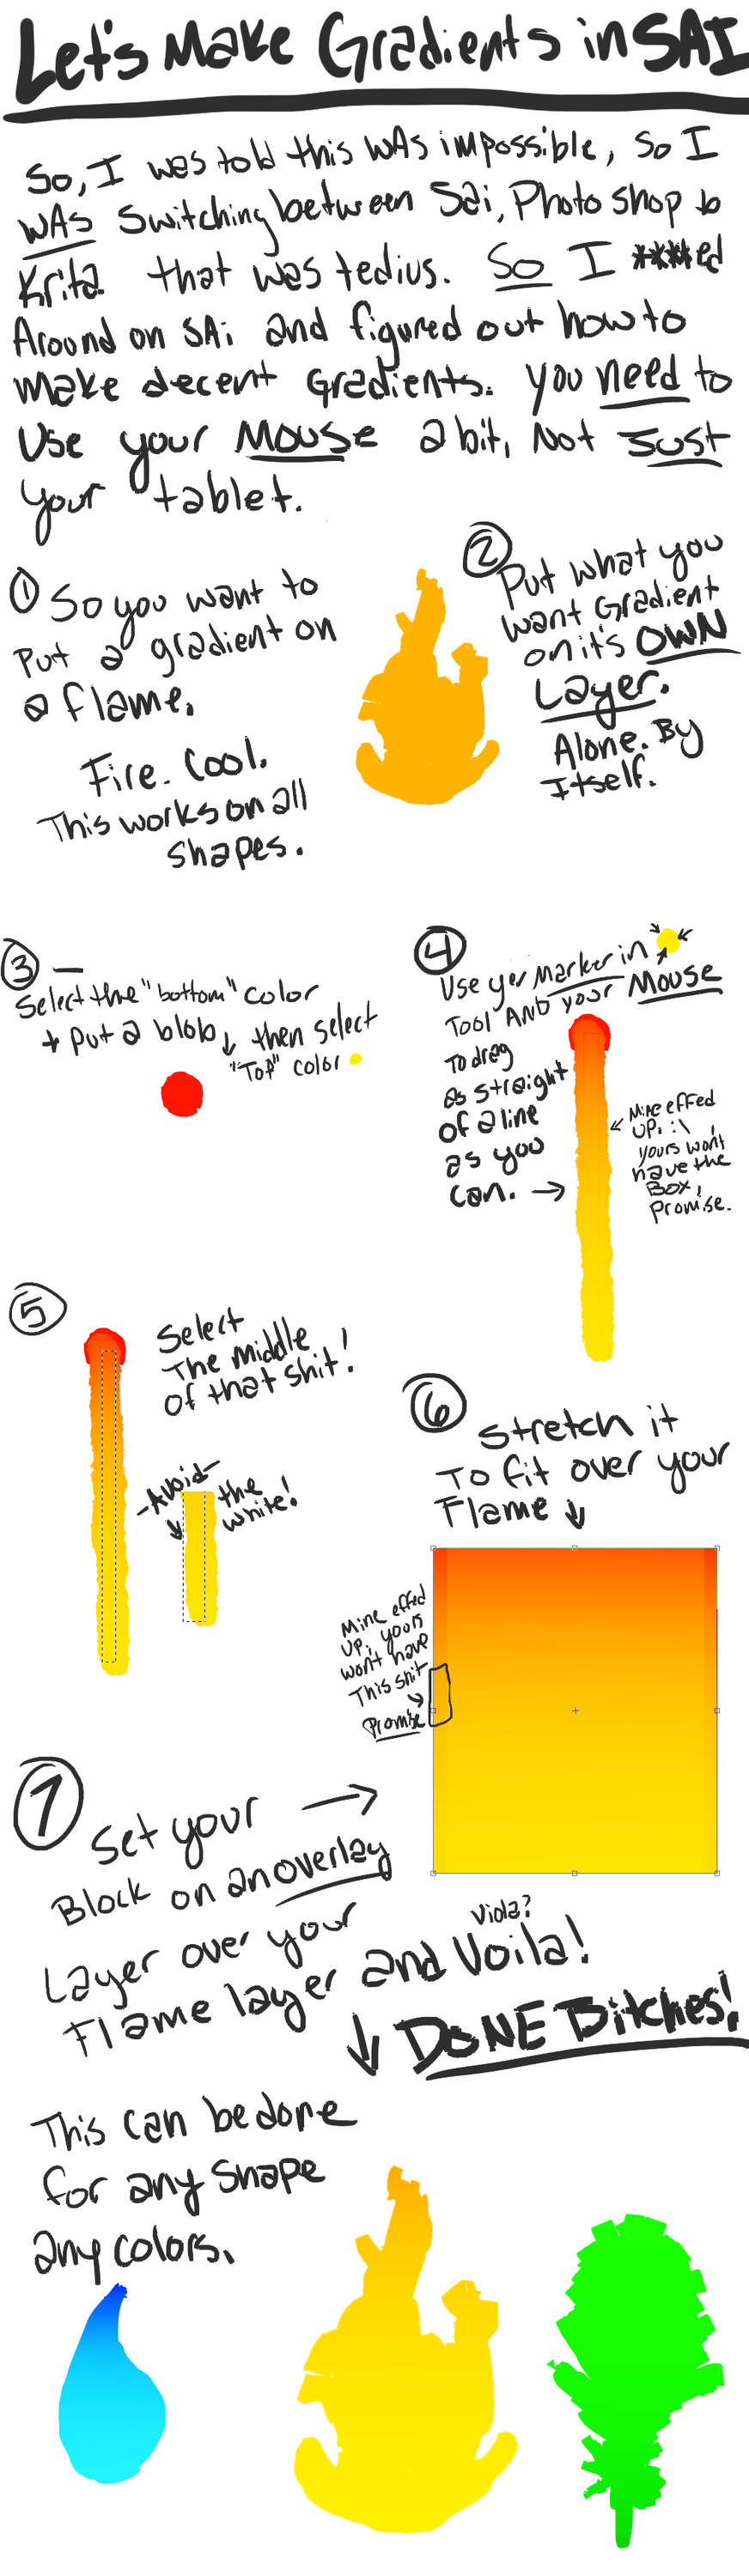 Most recent image: How to SAI Gradients